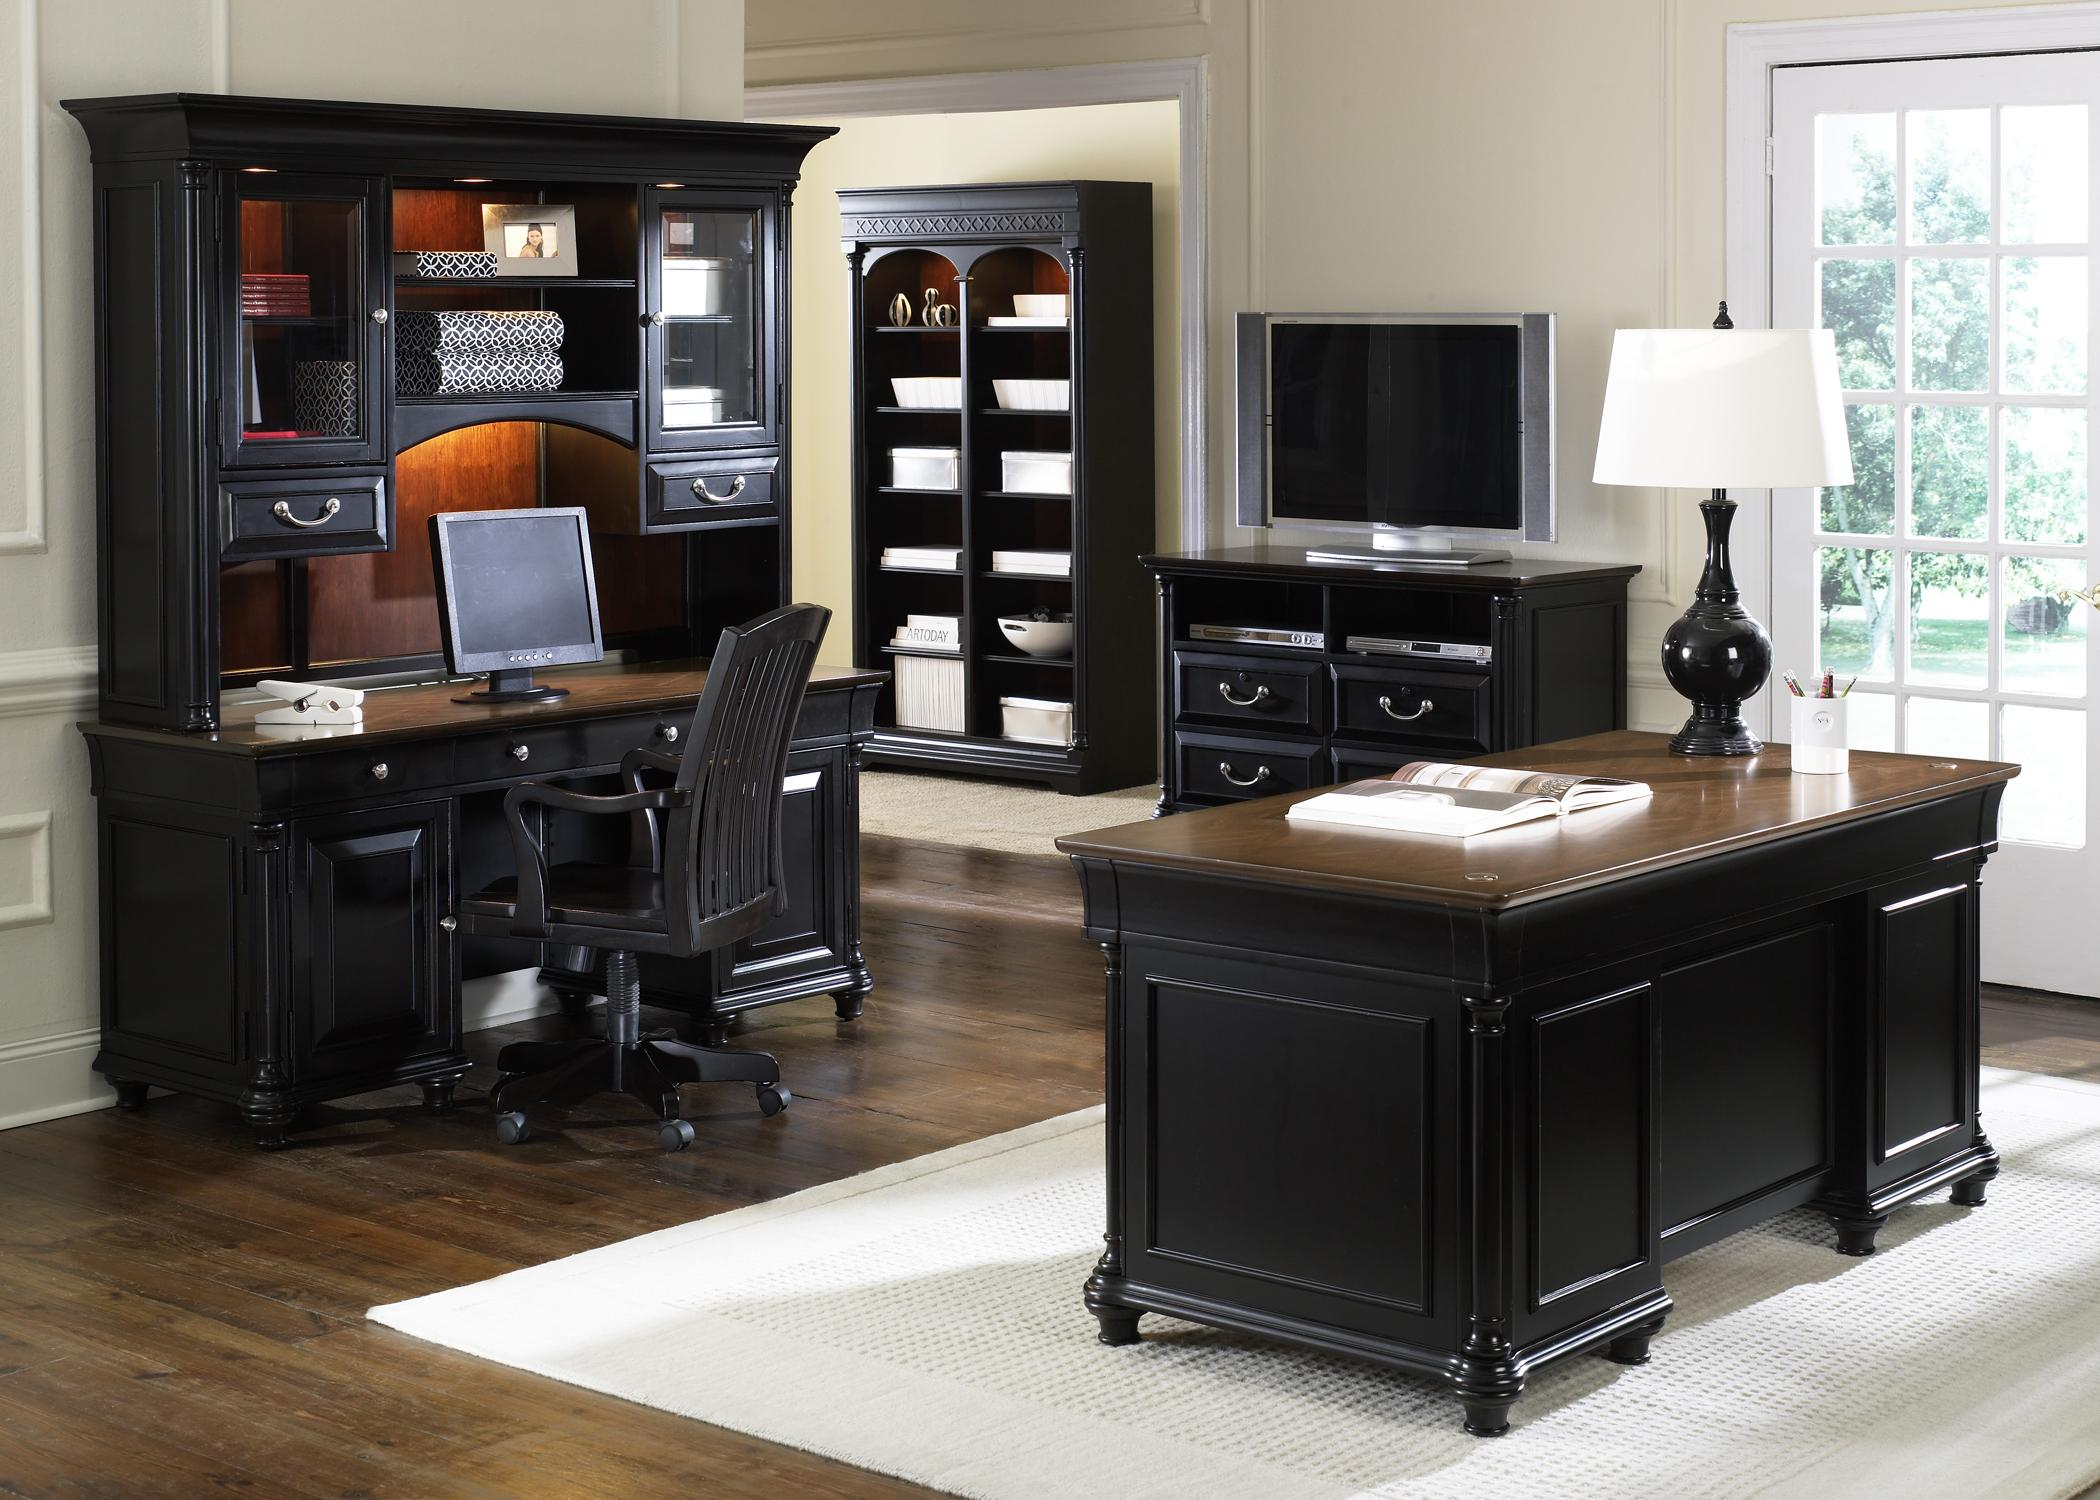 home staggering ideas office design photo along houston with furniture desk minimalist